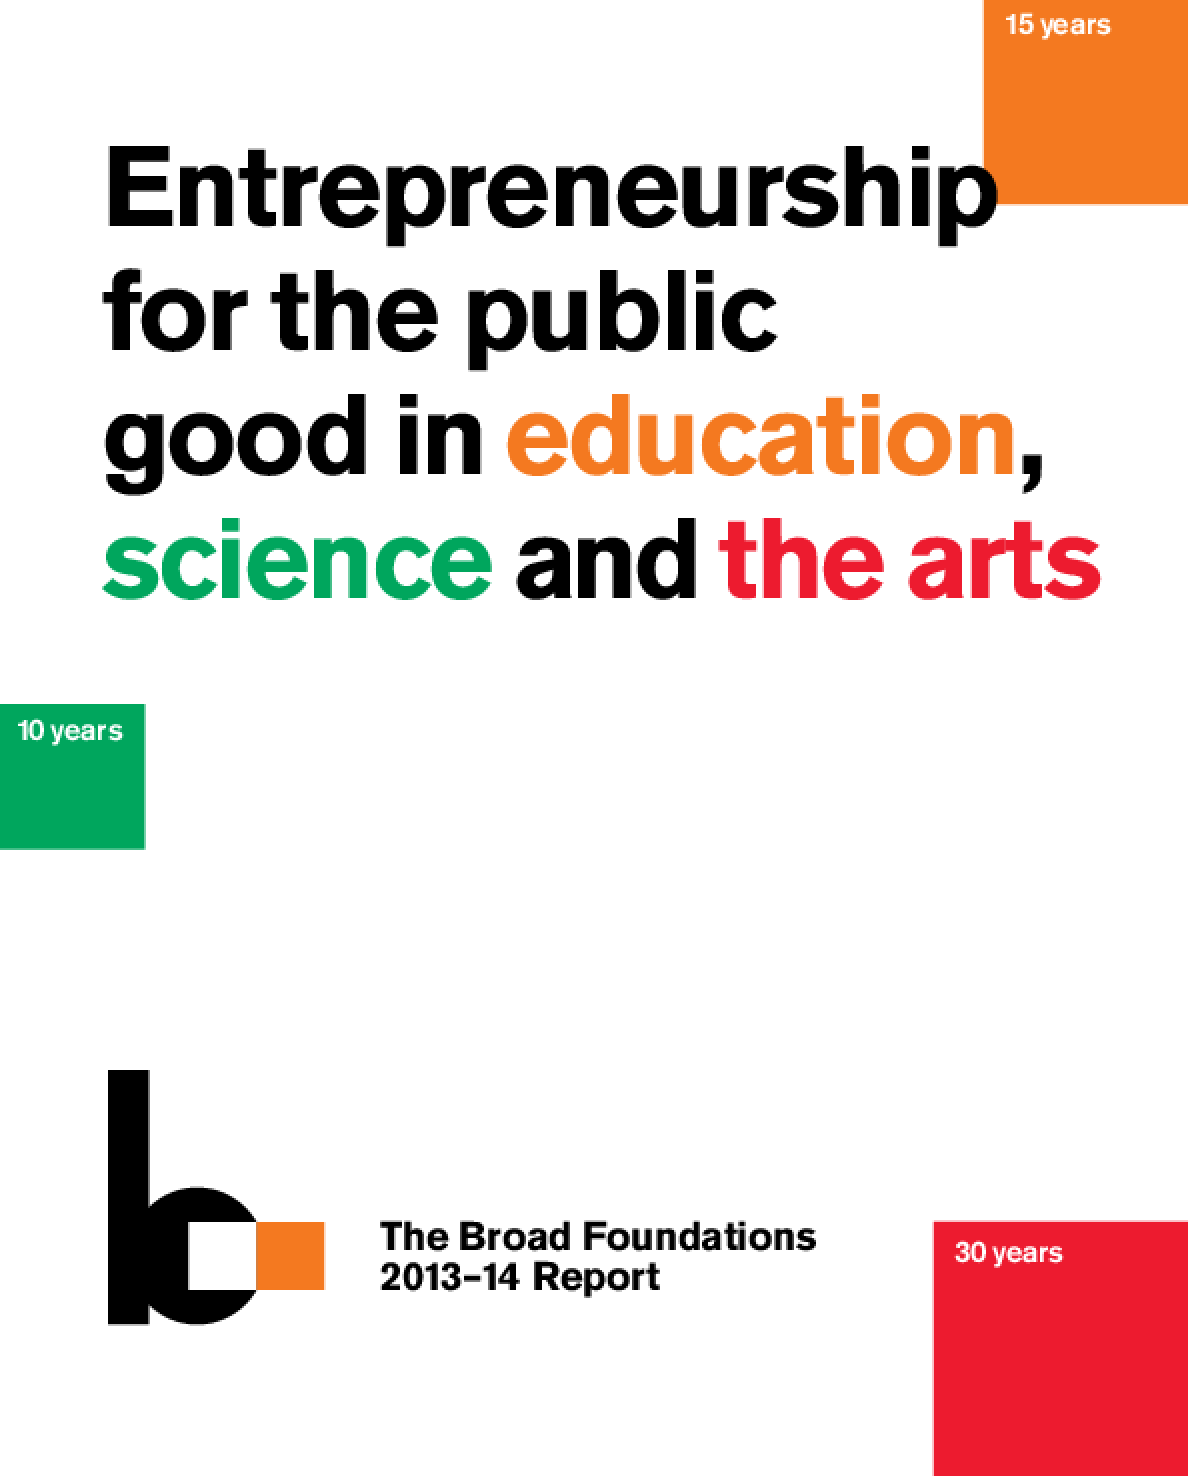 Entrepreneurship for the Public Good in Education, Science and the Arts: The Broad Foundation 2013-14 Report